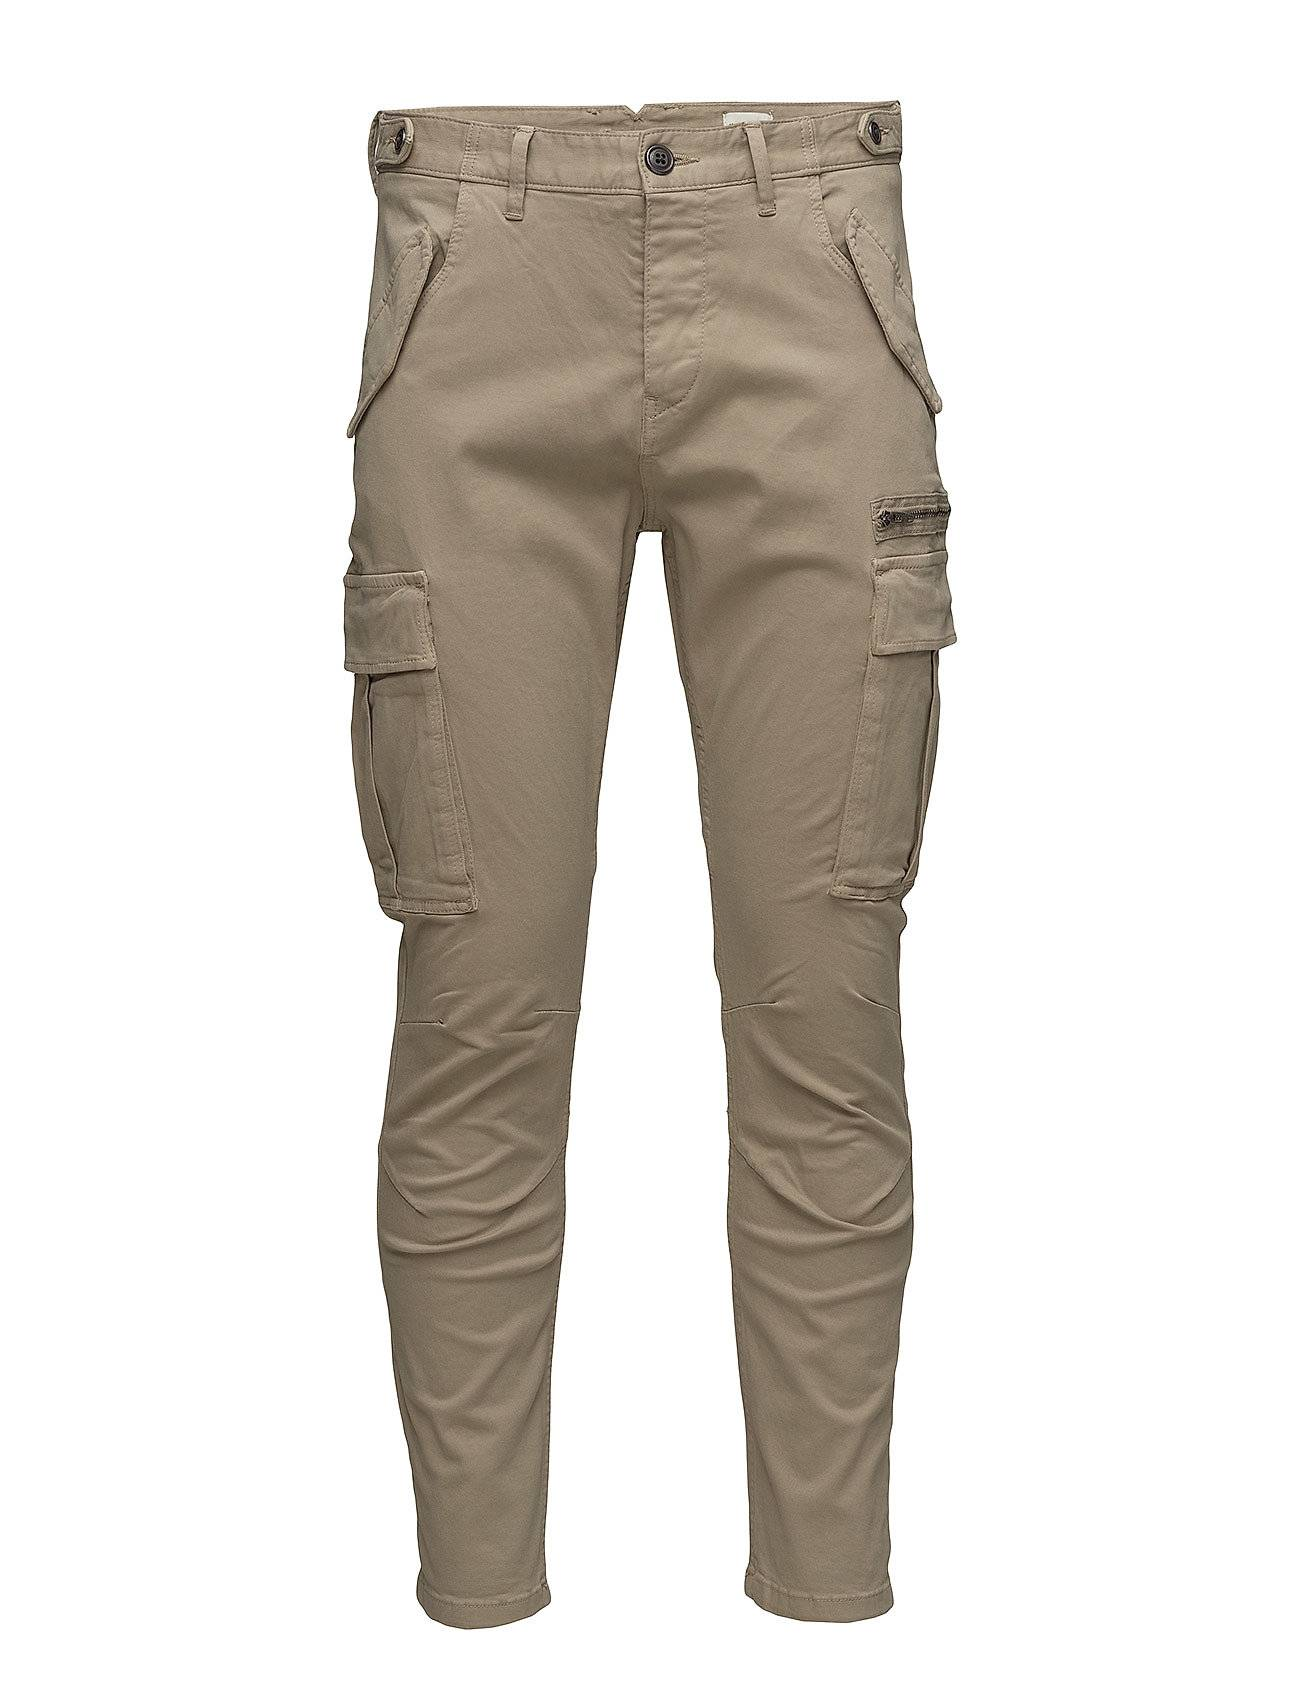 Selected Homme Shxnaples Sand Slim Cargo St Pants